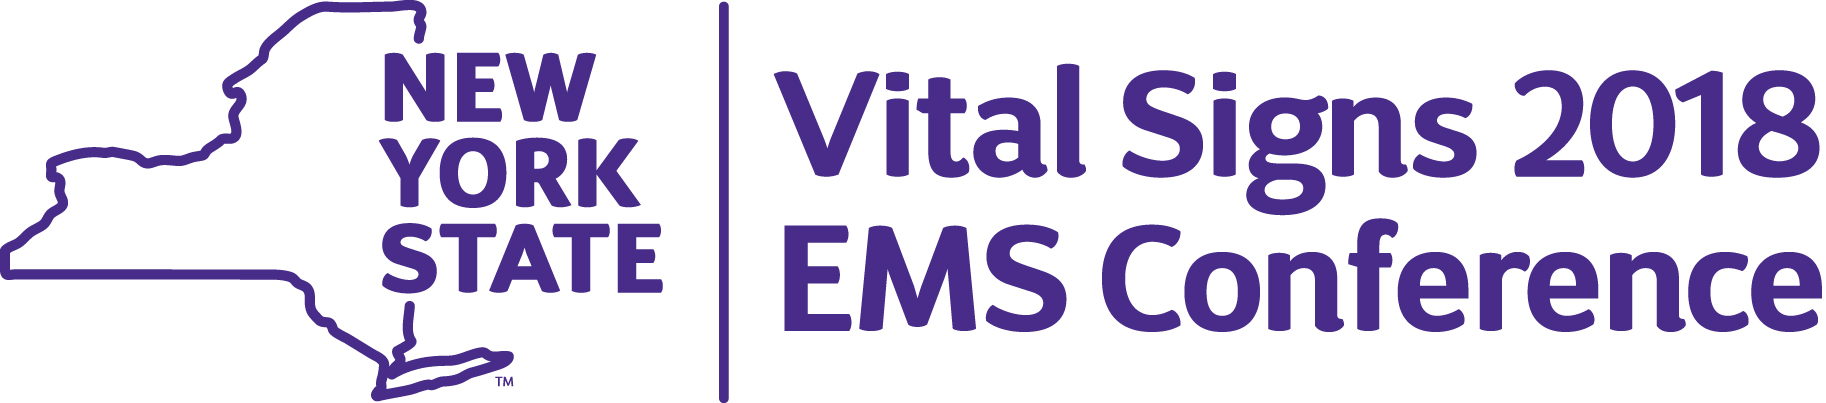 Vital Signs EMS Conference 2018